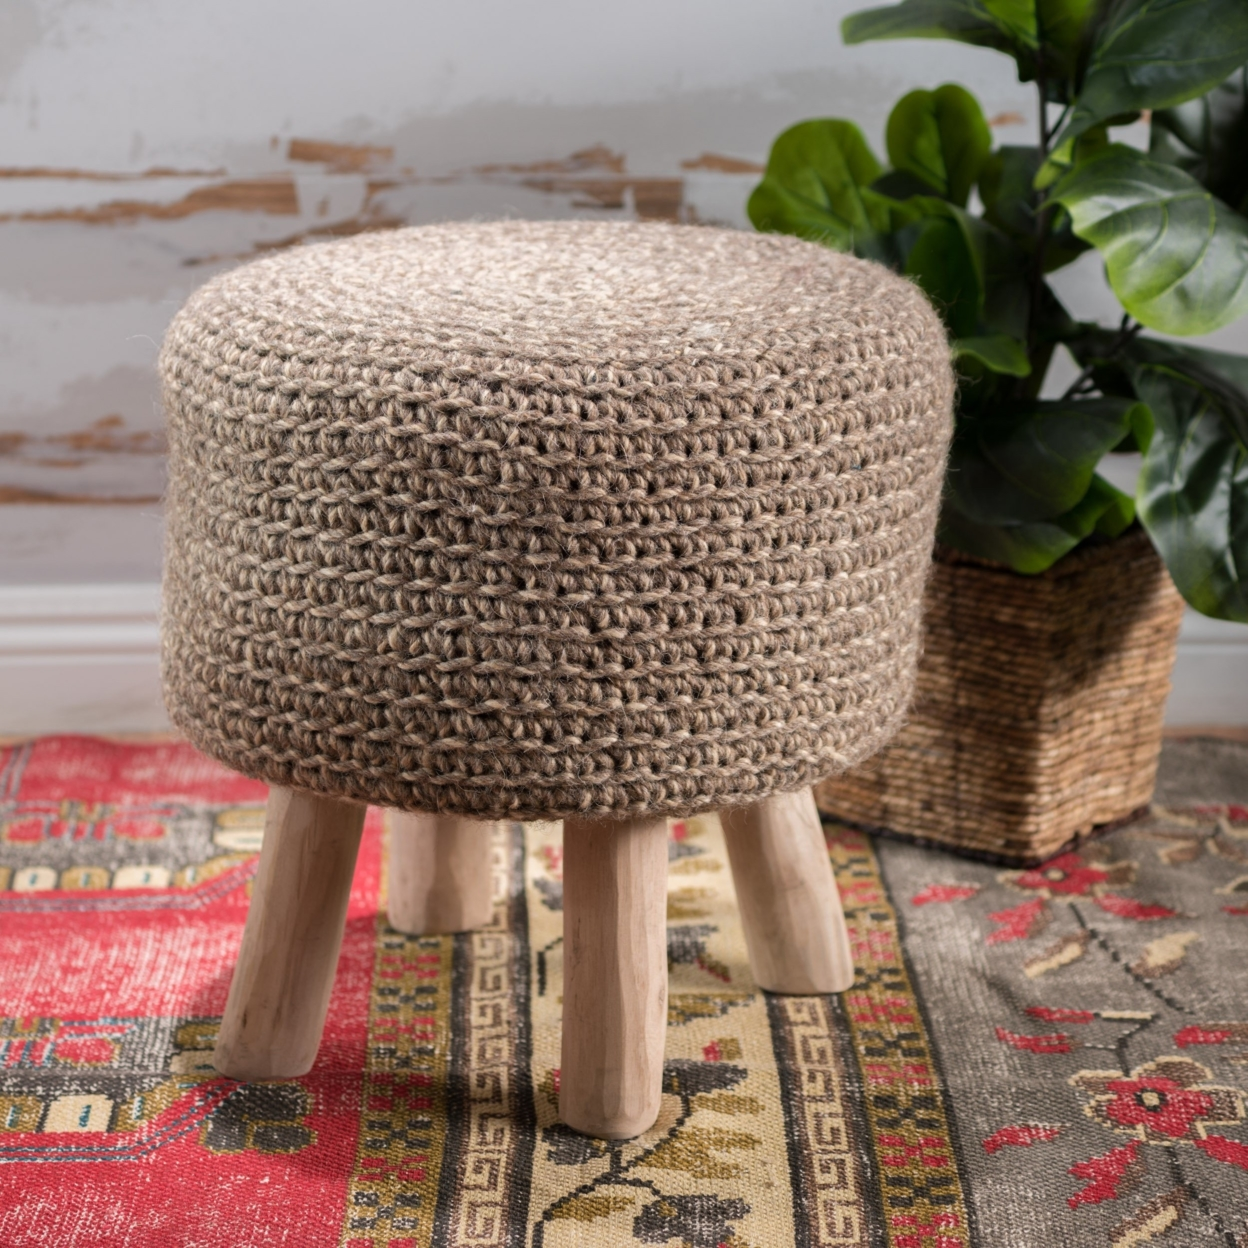 Montague Linen Wool Ottoman Stool 2018 new fashion circular beach bag summer women shoulder bags round shape straw bag boho vintage retro beach handbag